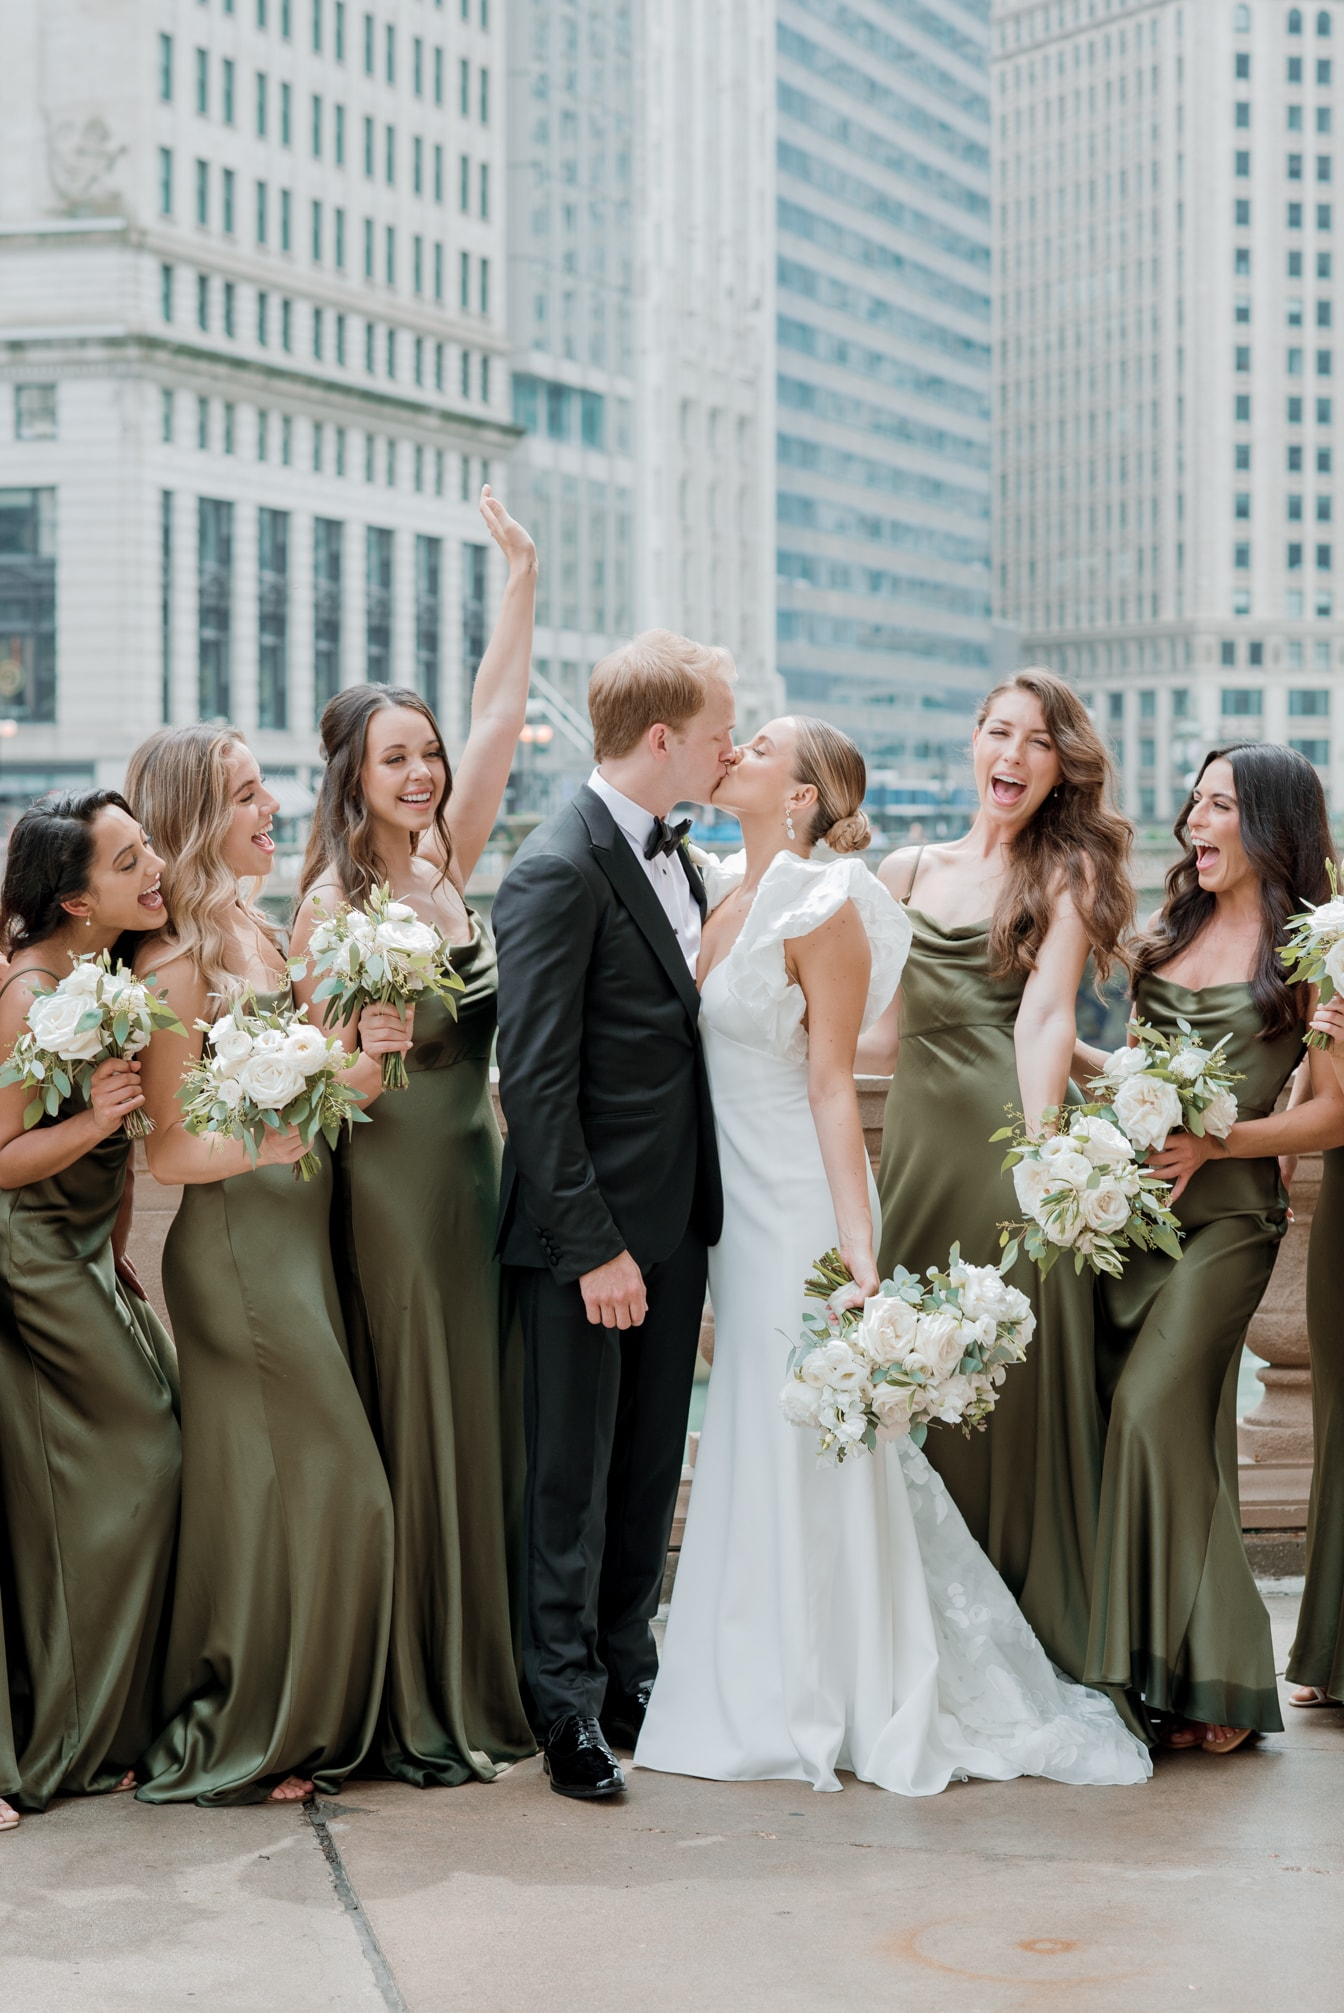 Bride and groom kissing amongst bridal party